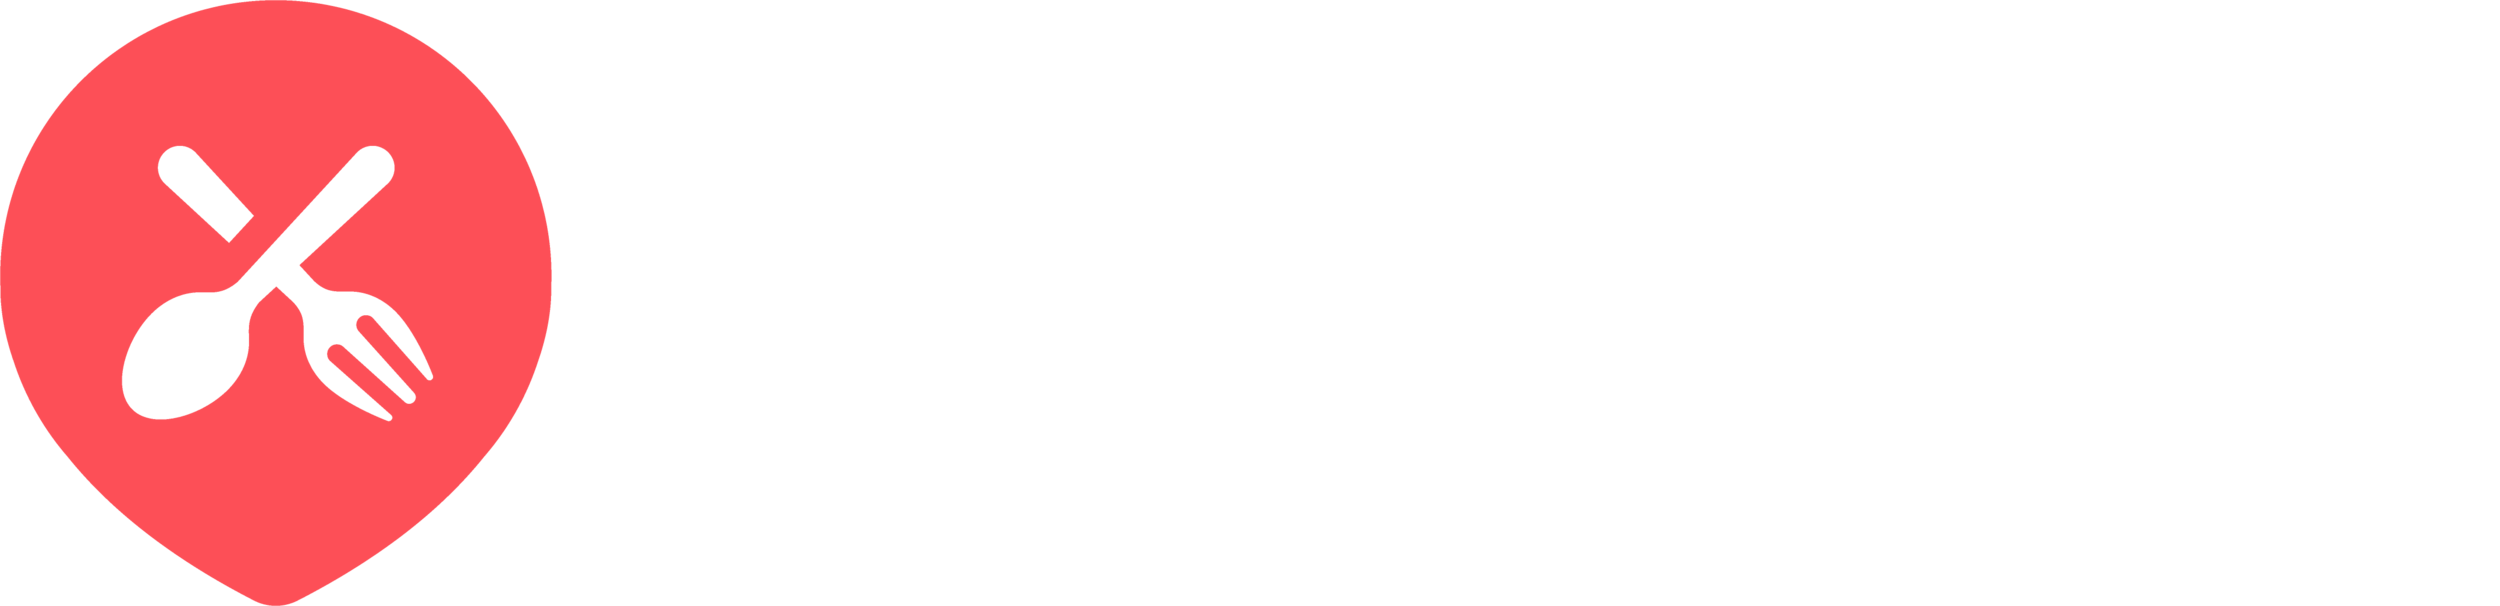 ChowNow2.png